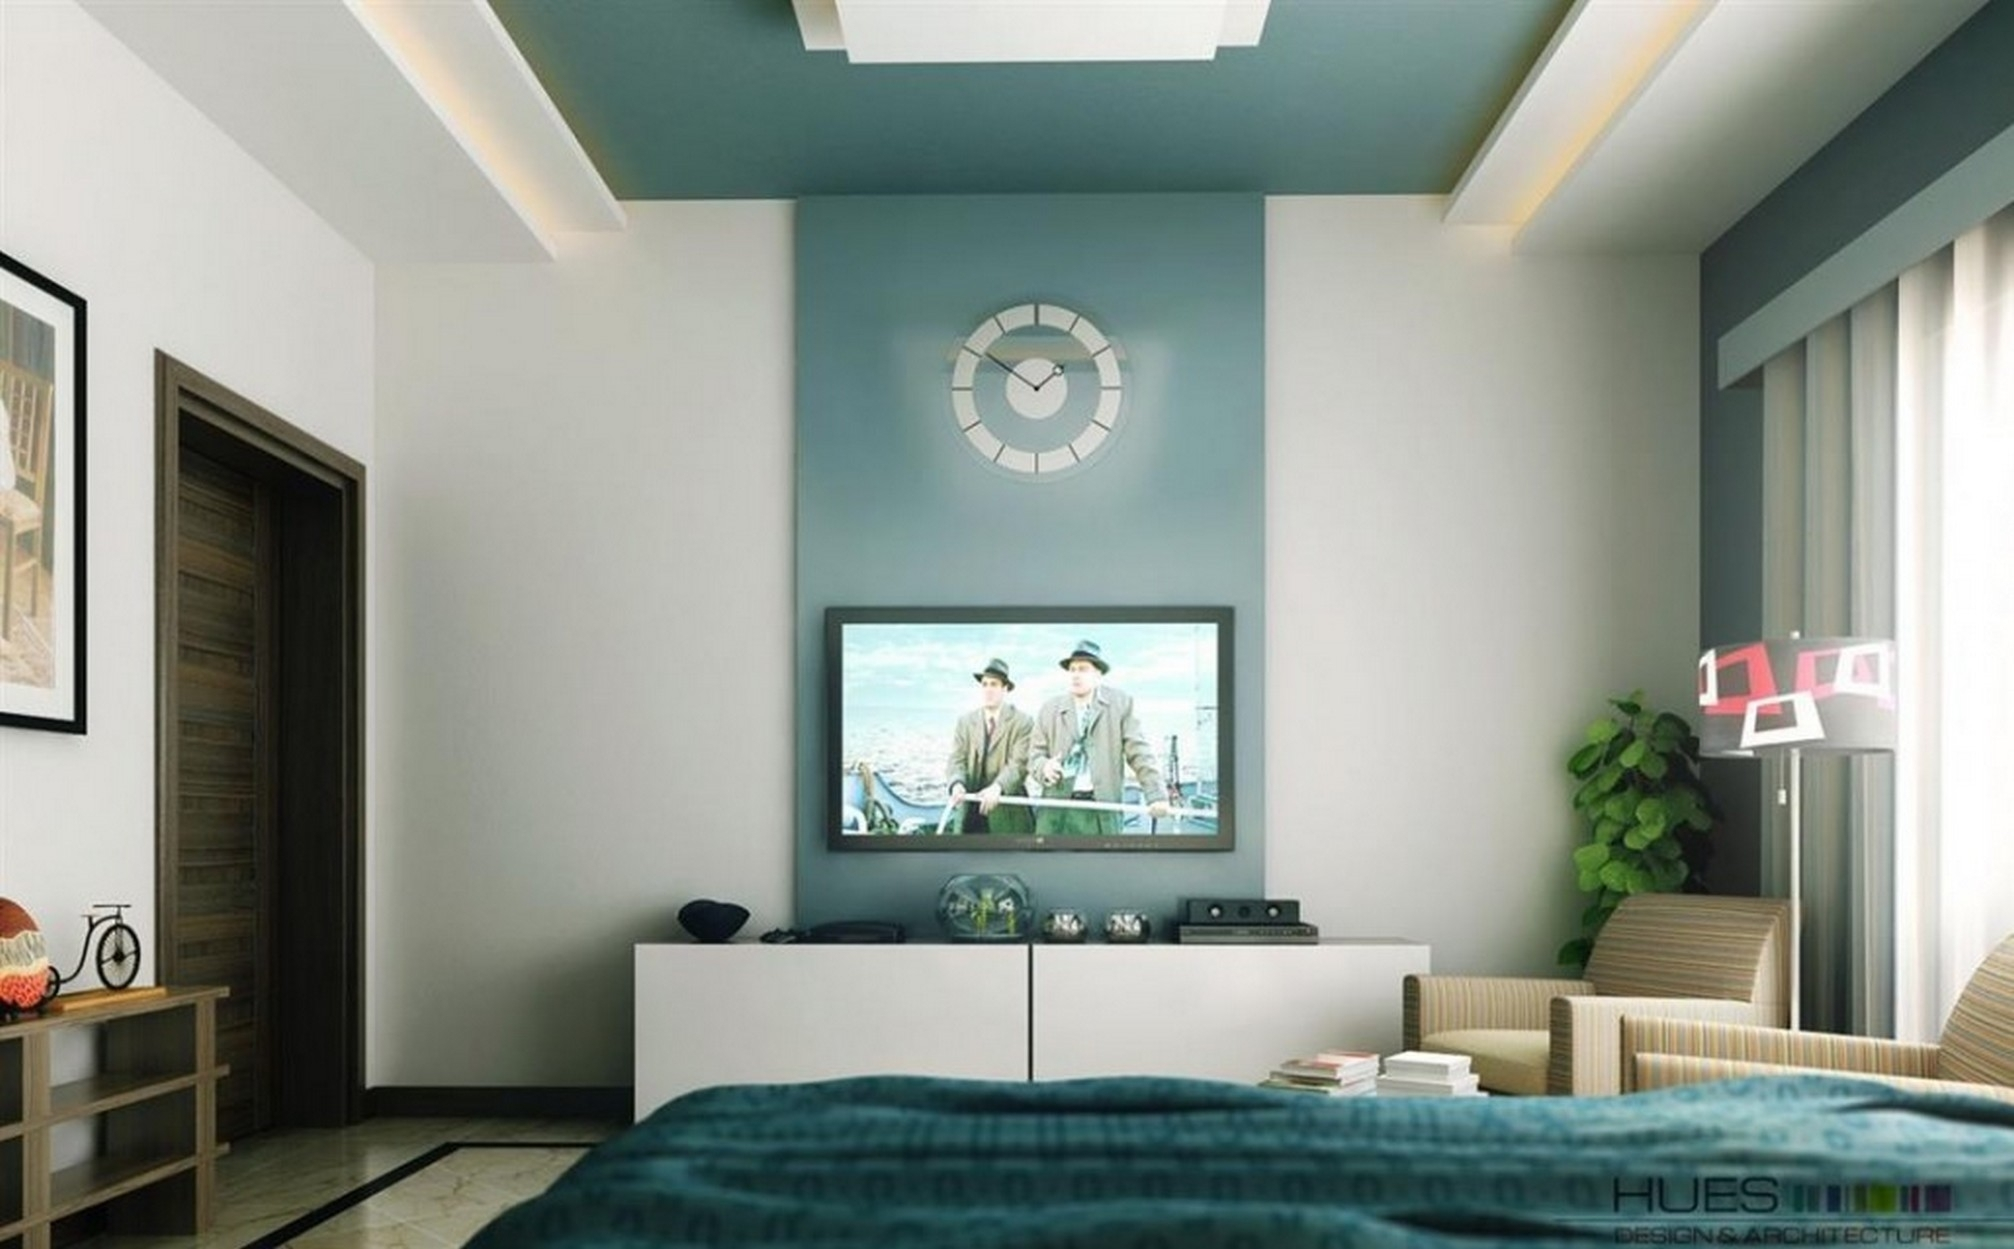 Accent Wall Color For High Walls With Round Clock Ideas And Tv On Inside Newest High Ceiling Wall Accents (View 7 of 15)